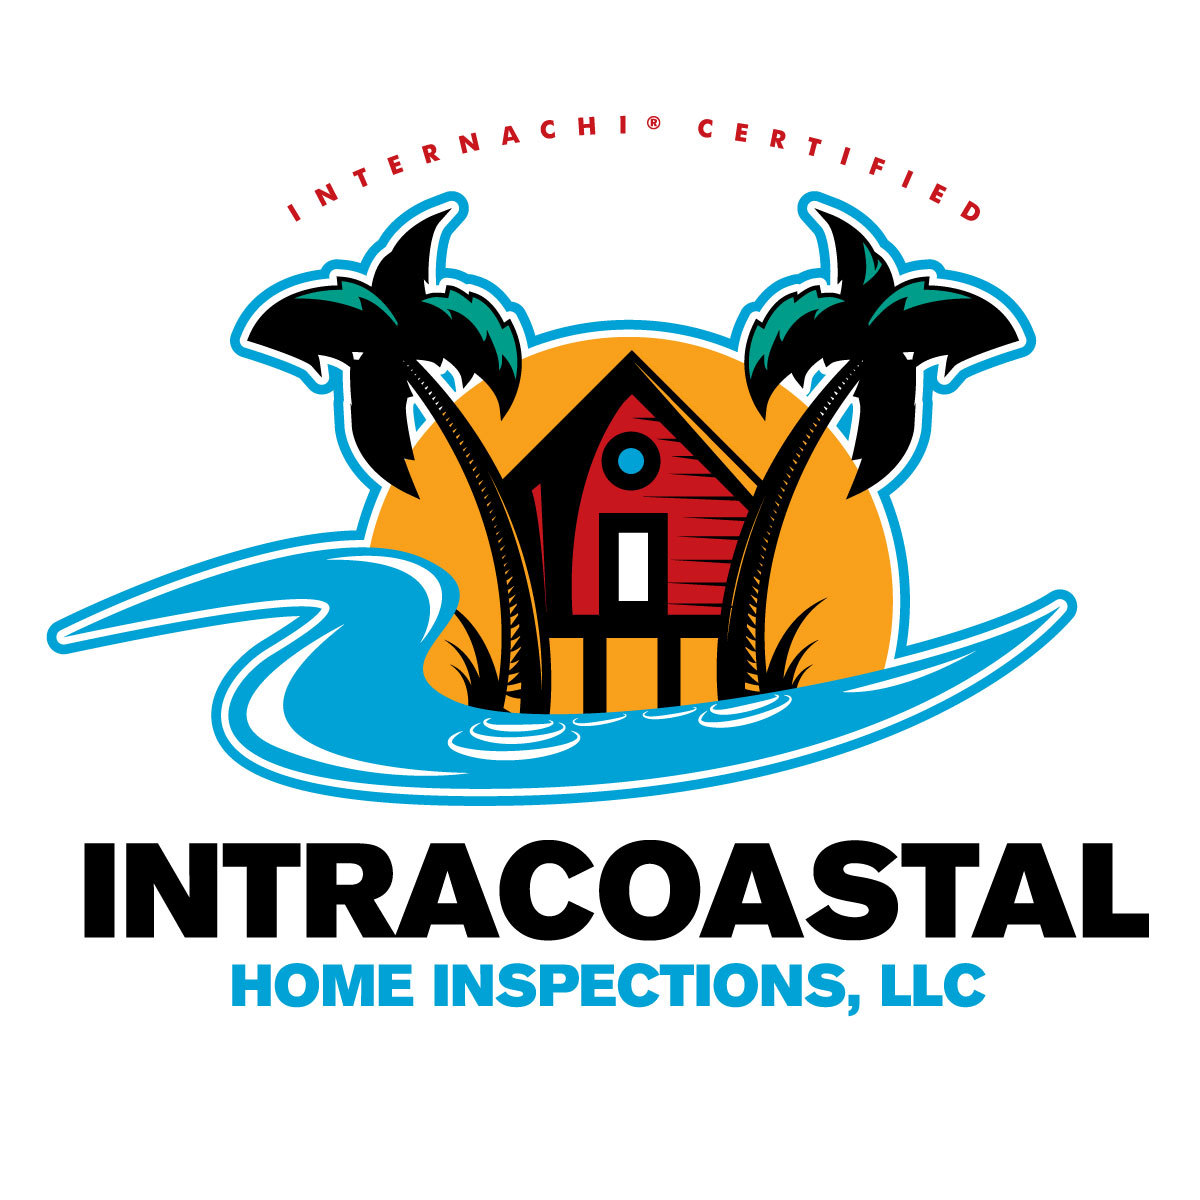 Intracoastal logo